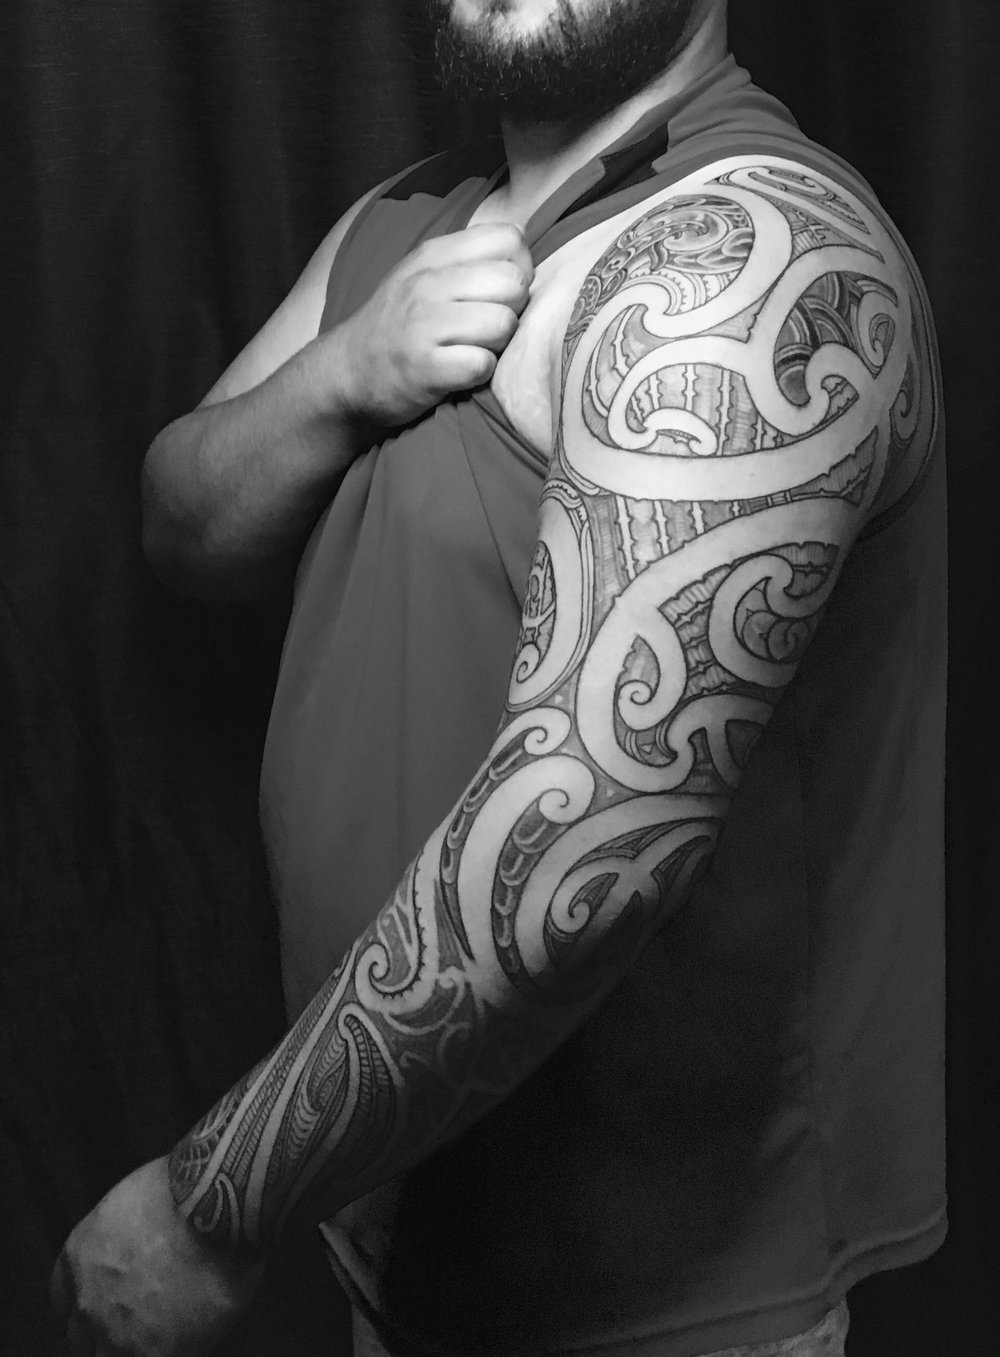 full-tamoko-sleeve-tattoo-nz.jpg